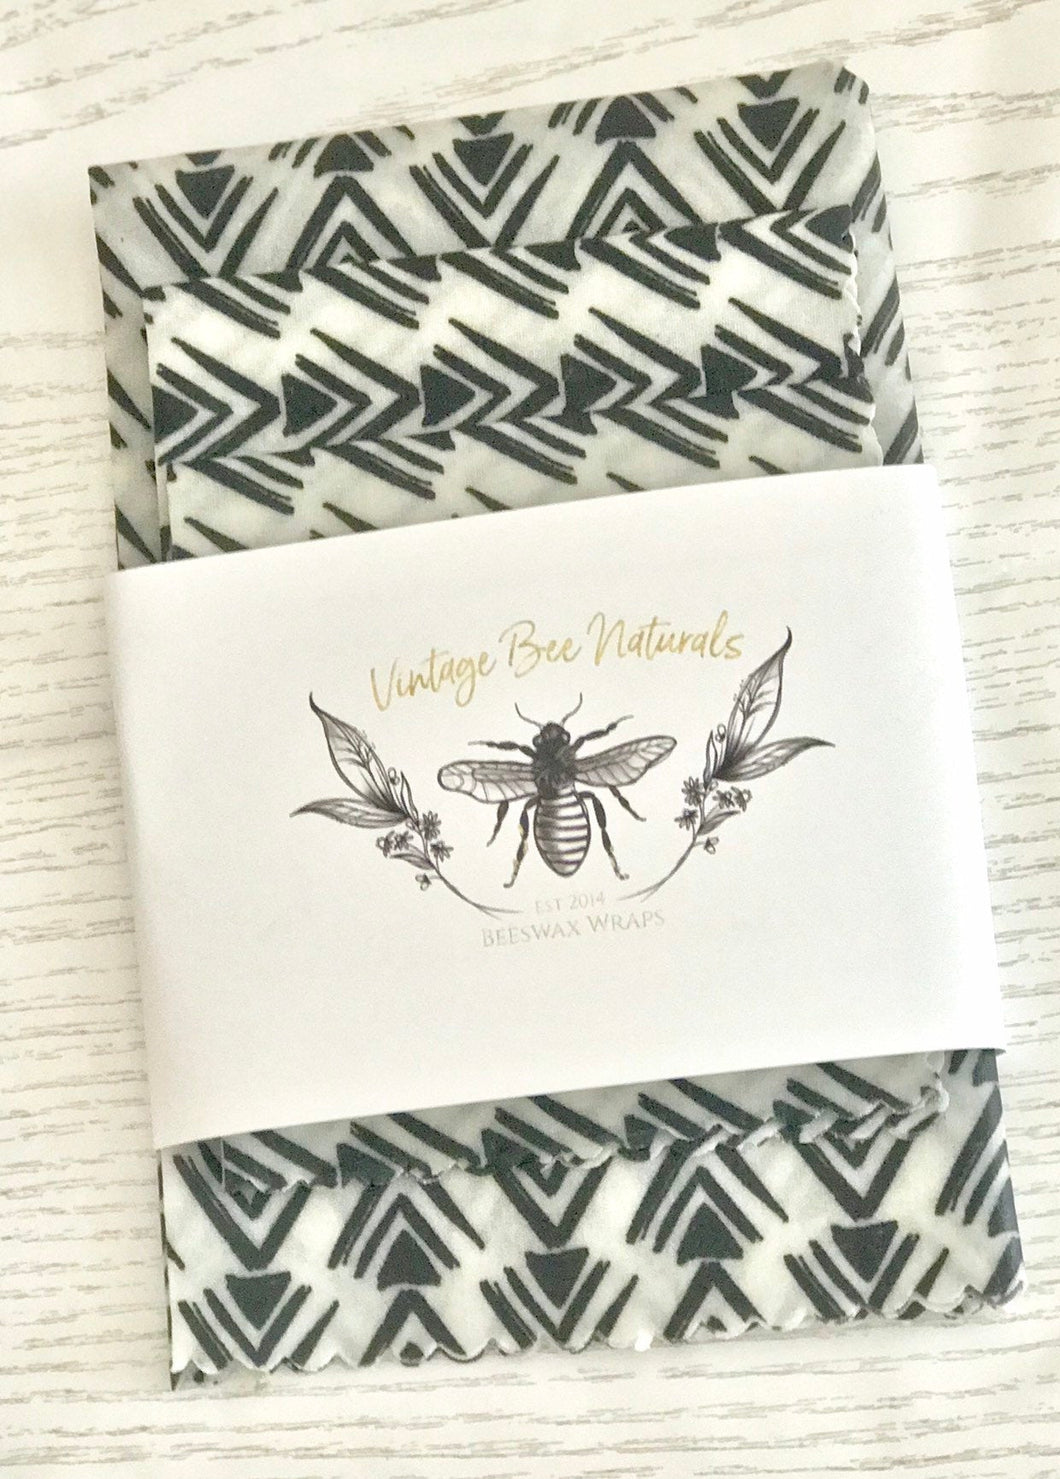 Beeswax Food Wrap Set of 3 Black & white - Beeswax Wraps